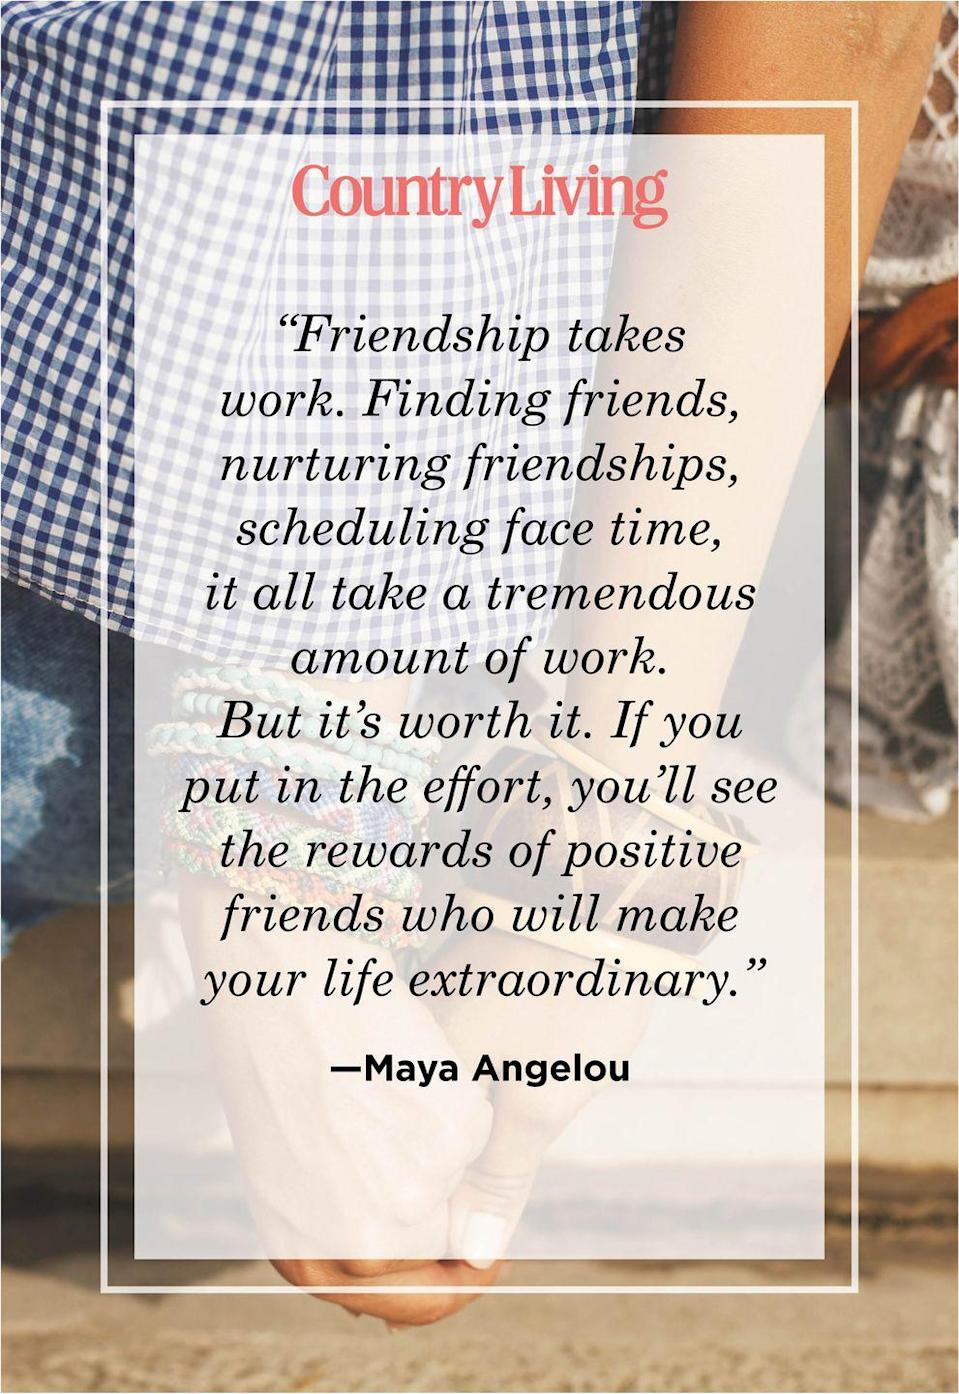 "<p>""Friendship takes work. Finding friends, nurturing friendships, scheduling face time, it all take a tremendous amount of work. But it's worth it. If you put in the effort, you'll see the rewards of positive friends who will make your life extraordinary.""</p>"